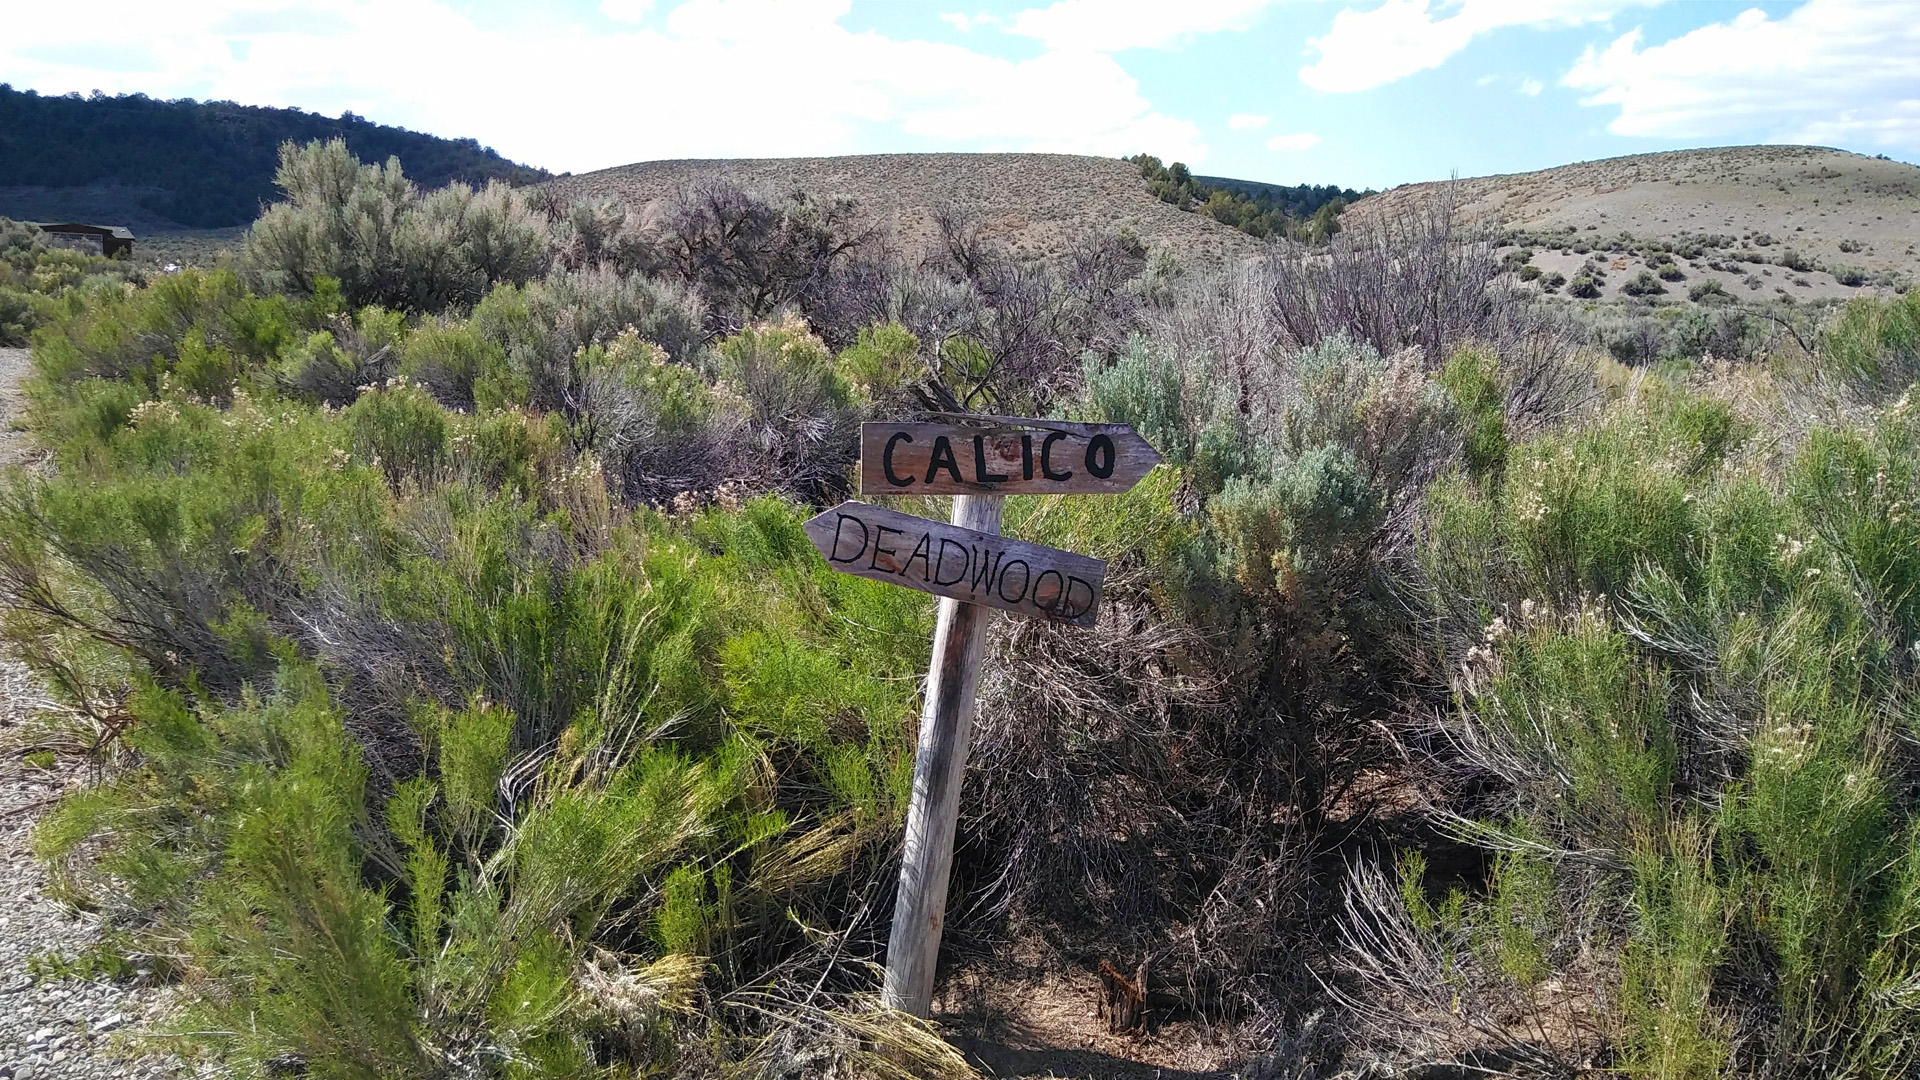 Calico and Deadwood trail signs